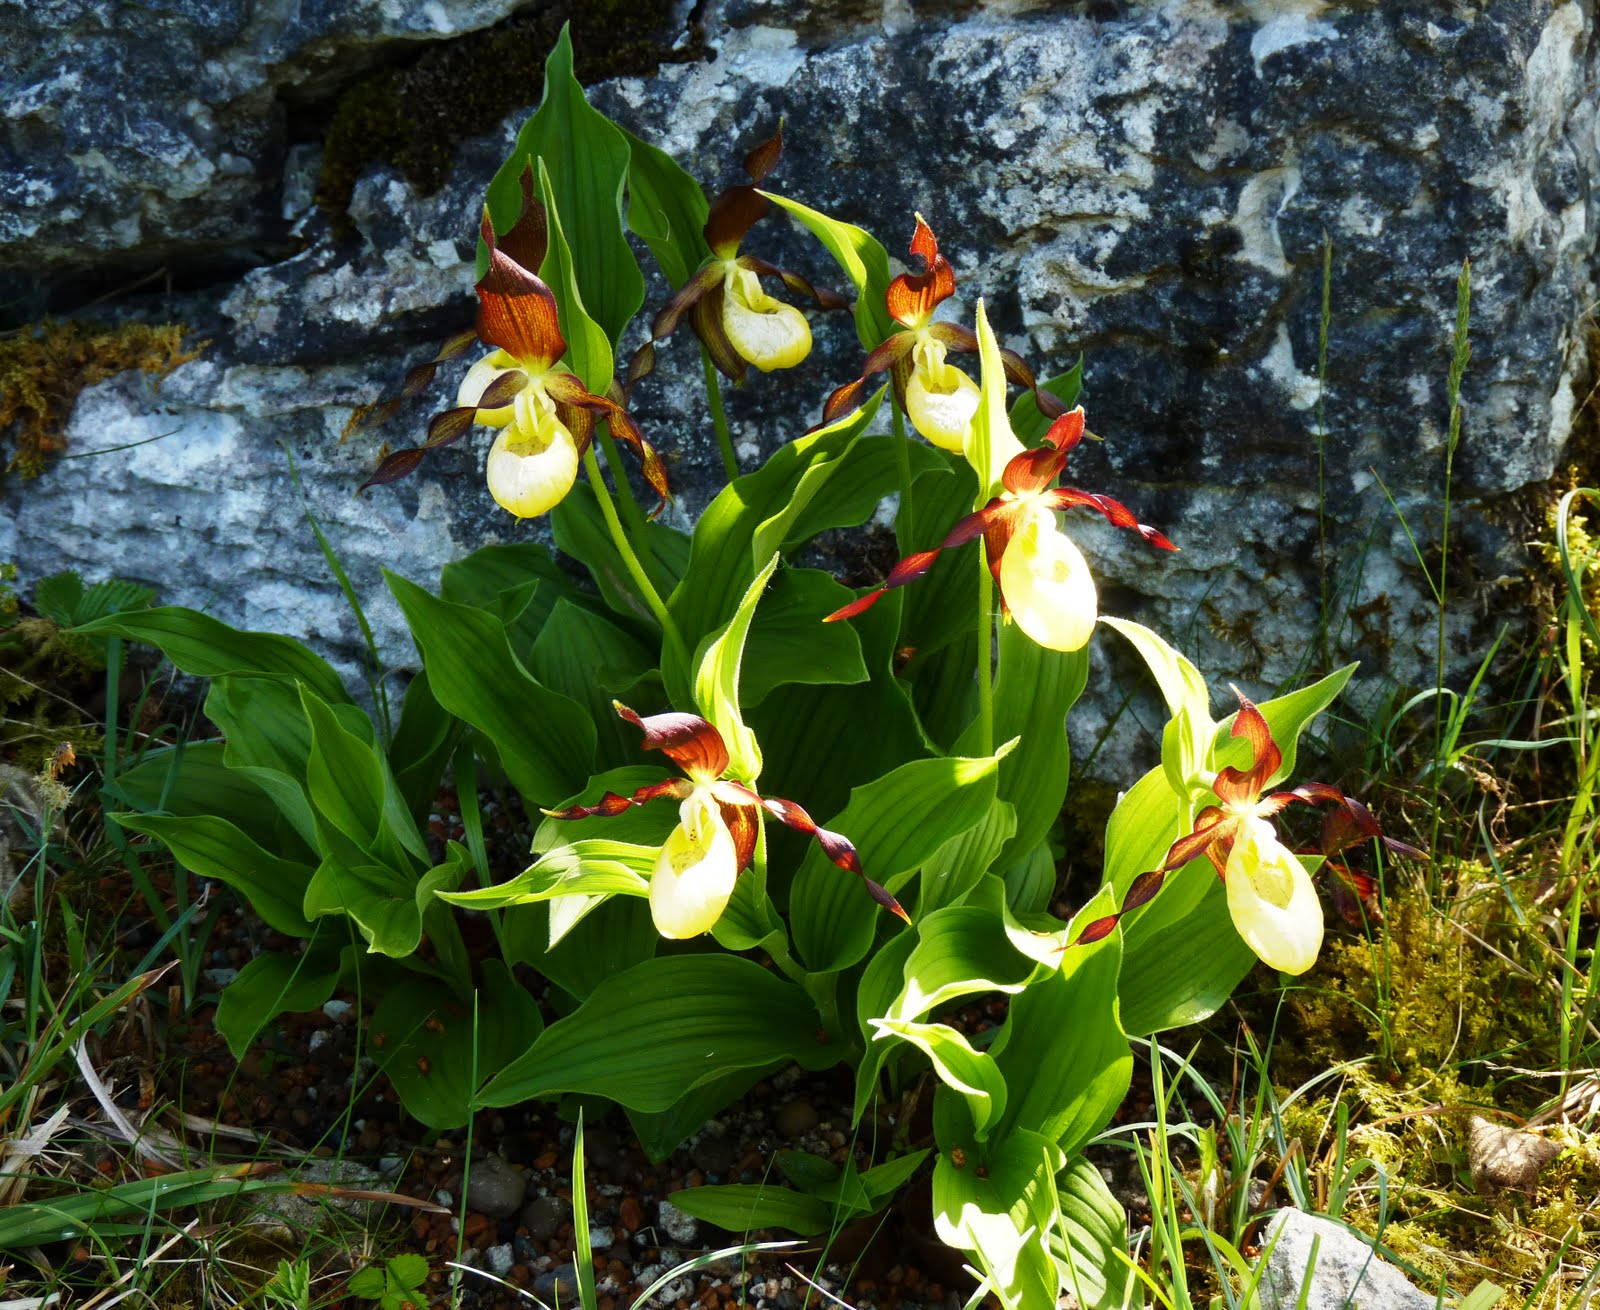 Lady's-slippers orchids.